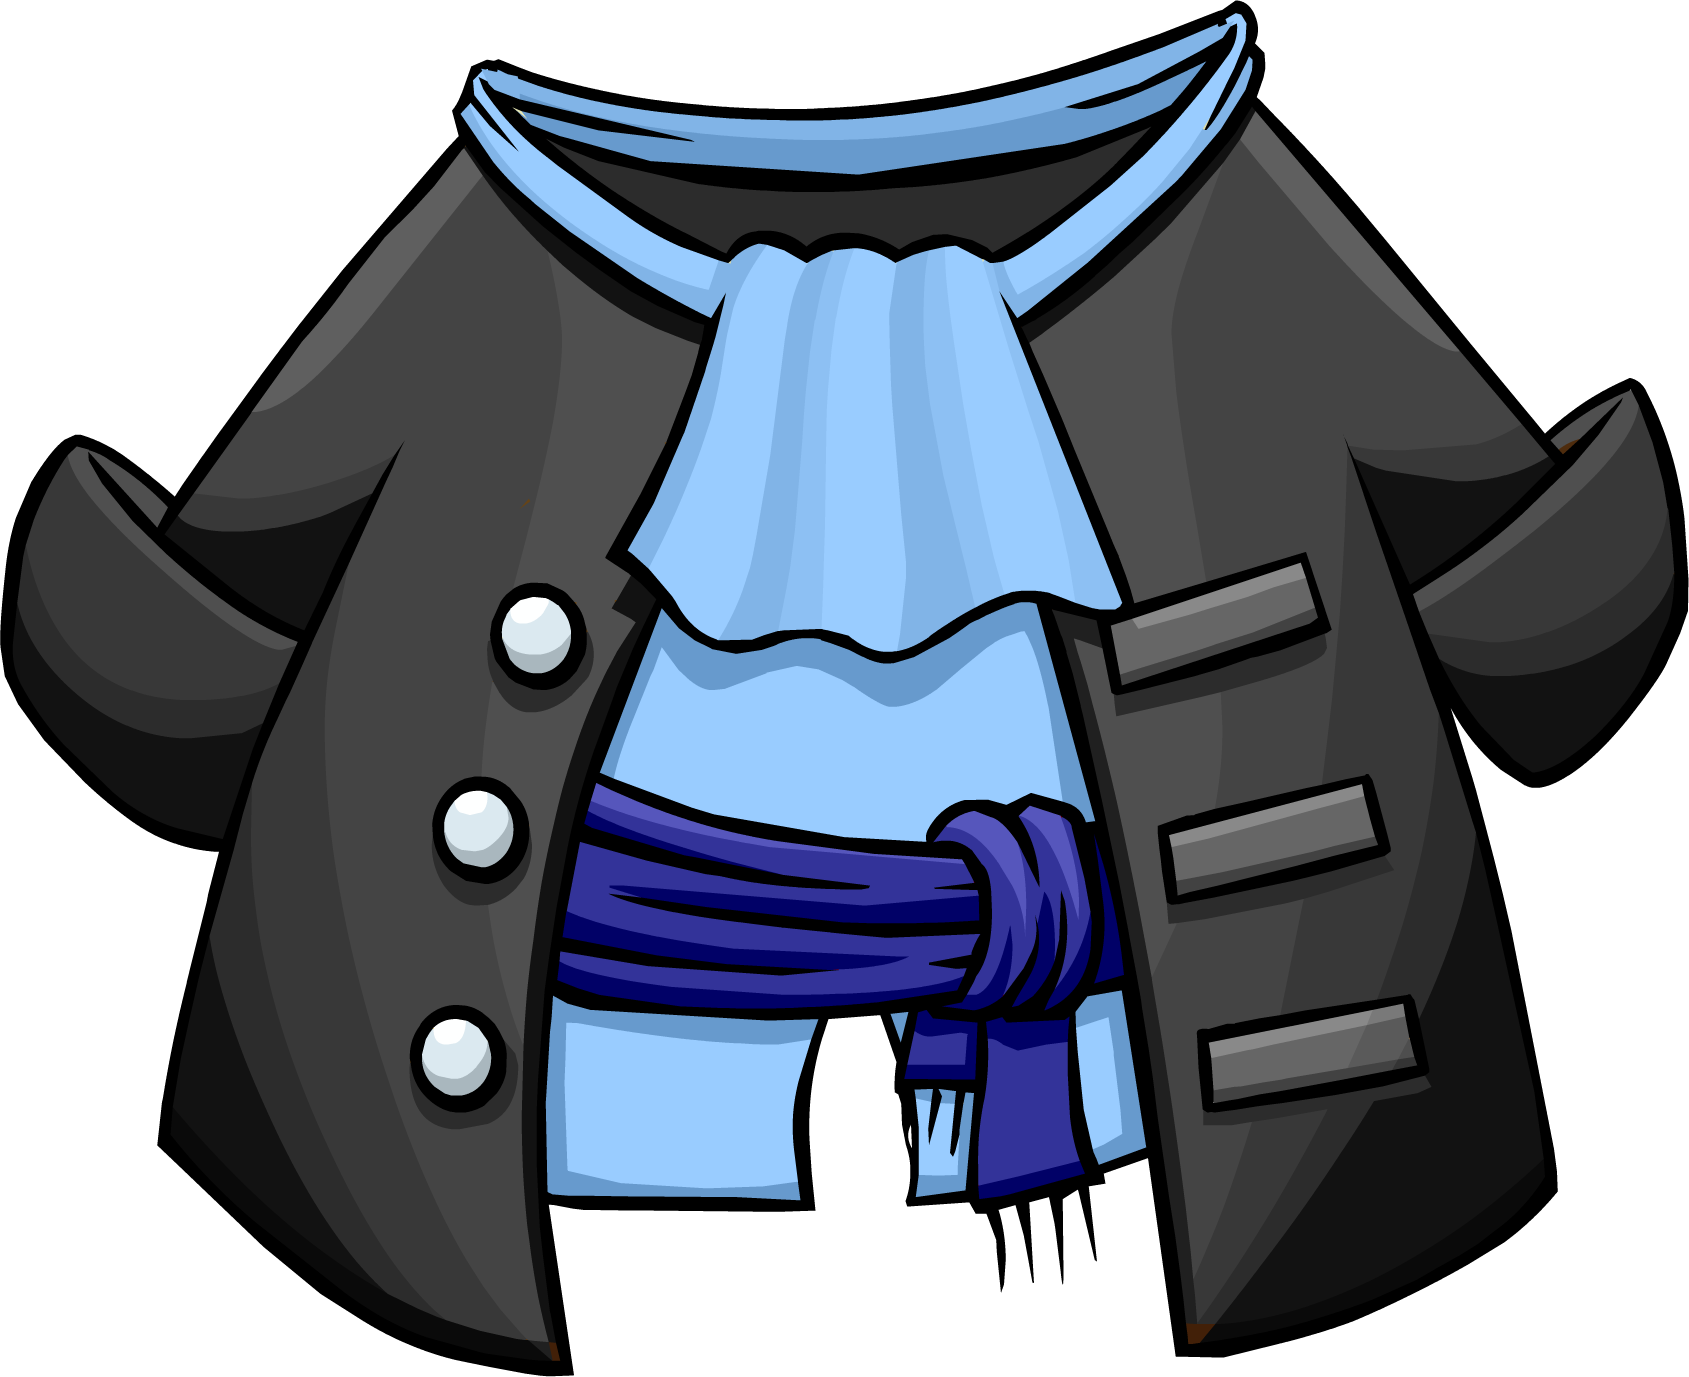 Gray pirate coat club. Pirates clipart character